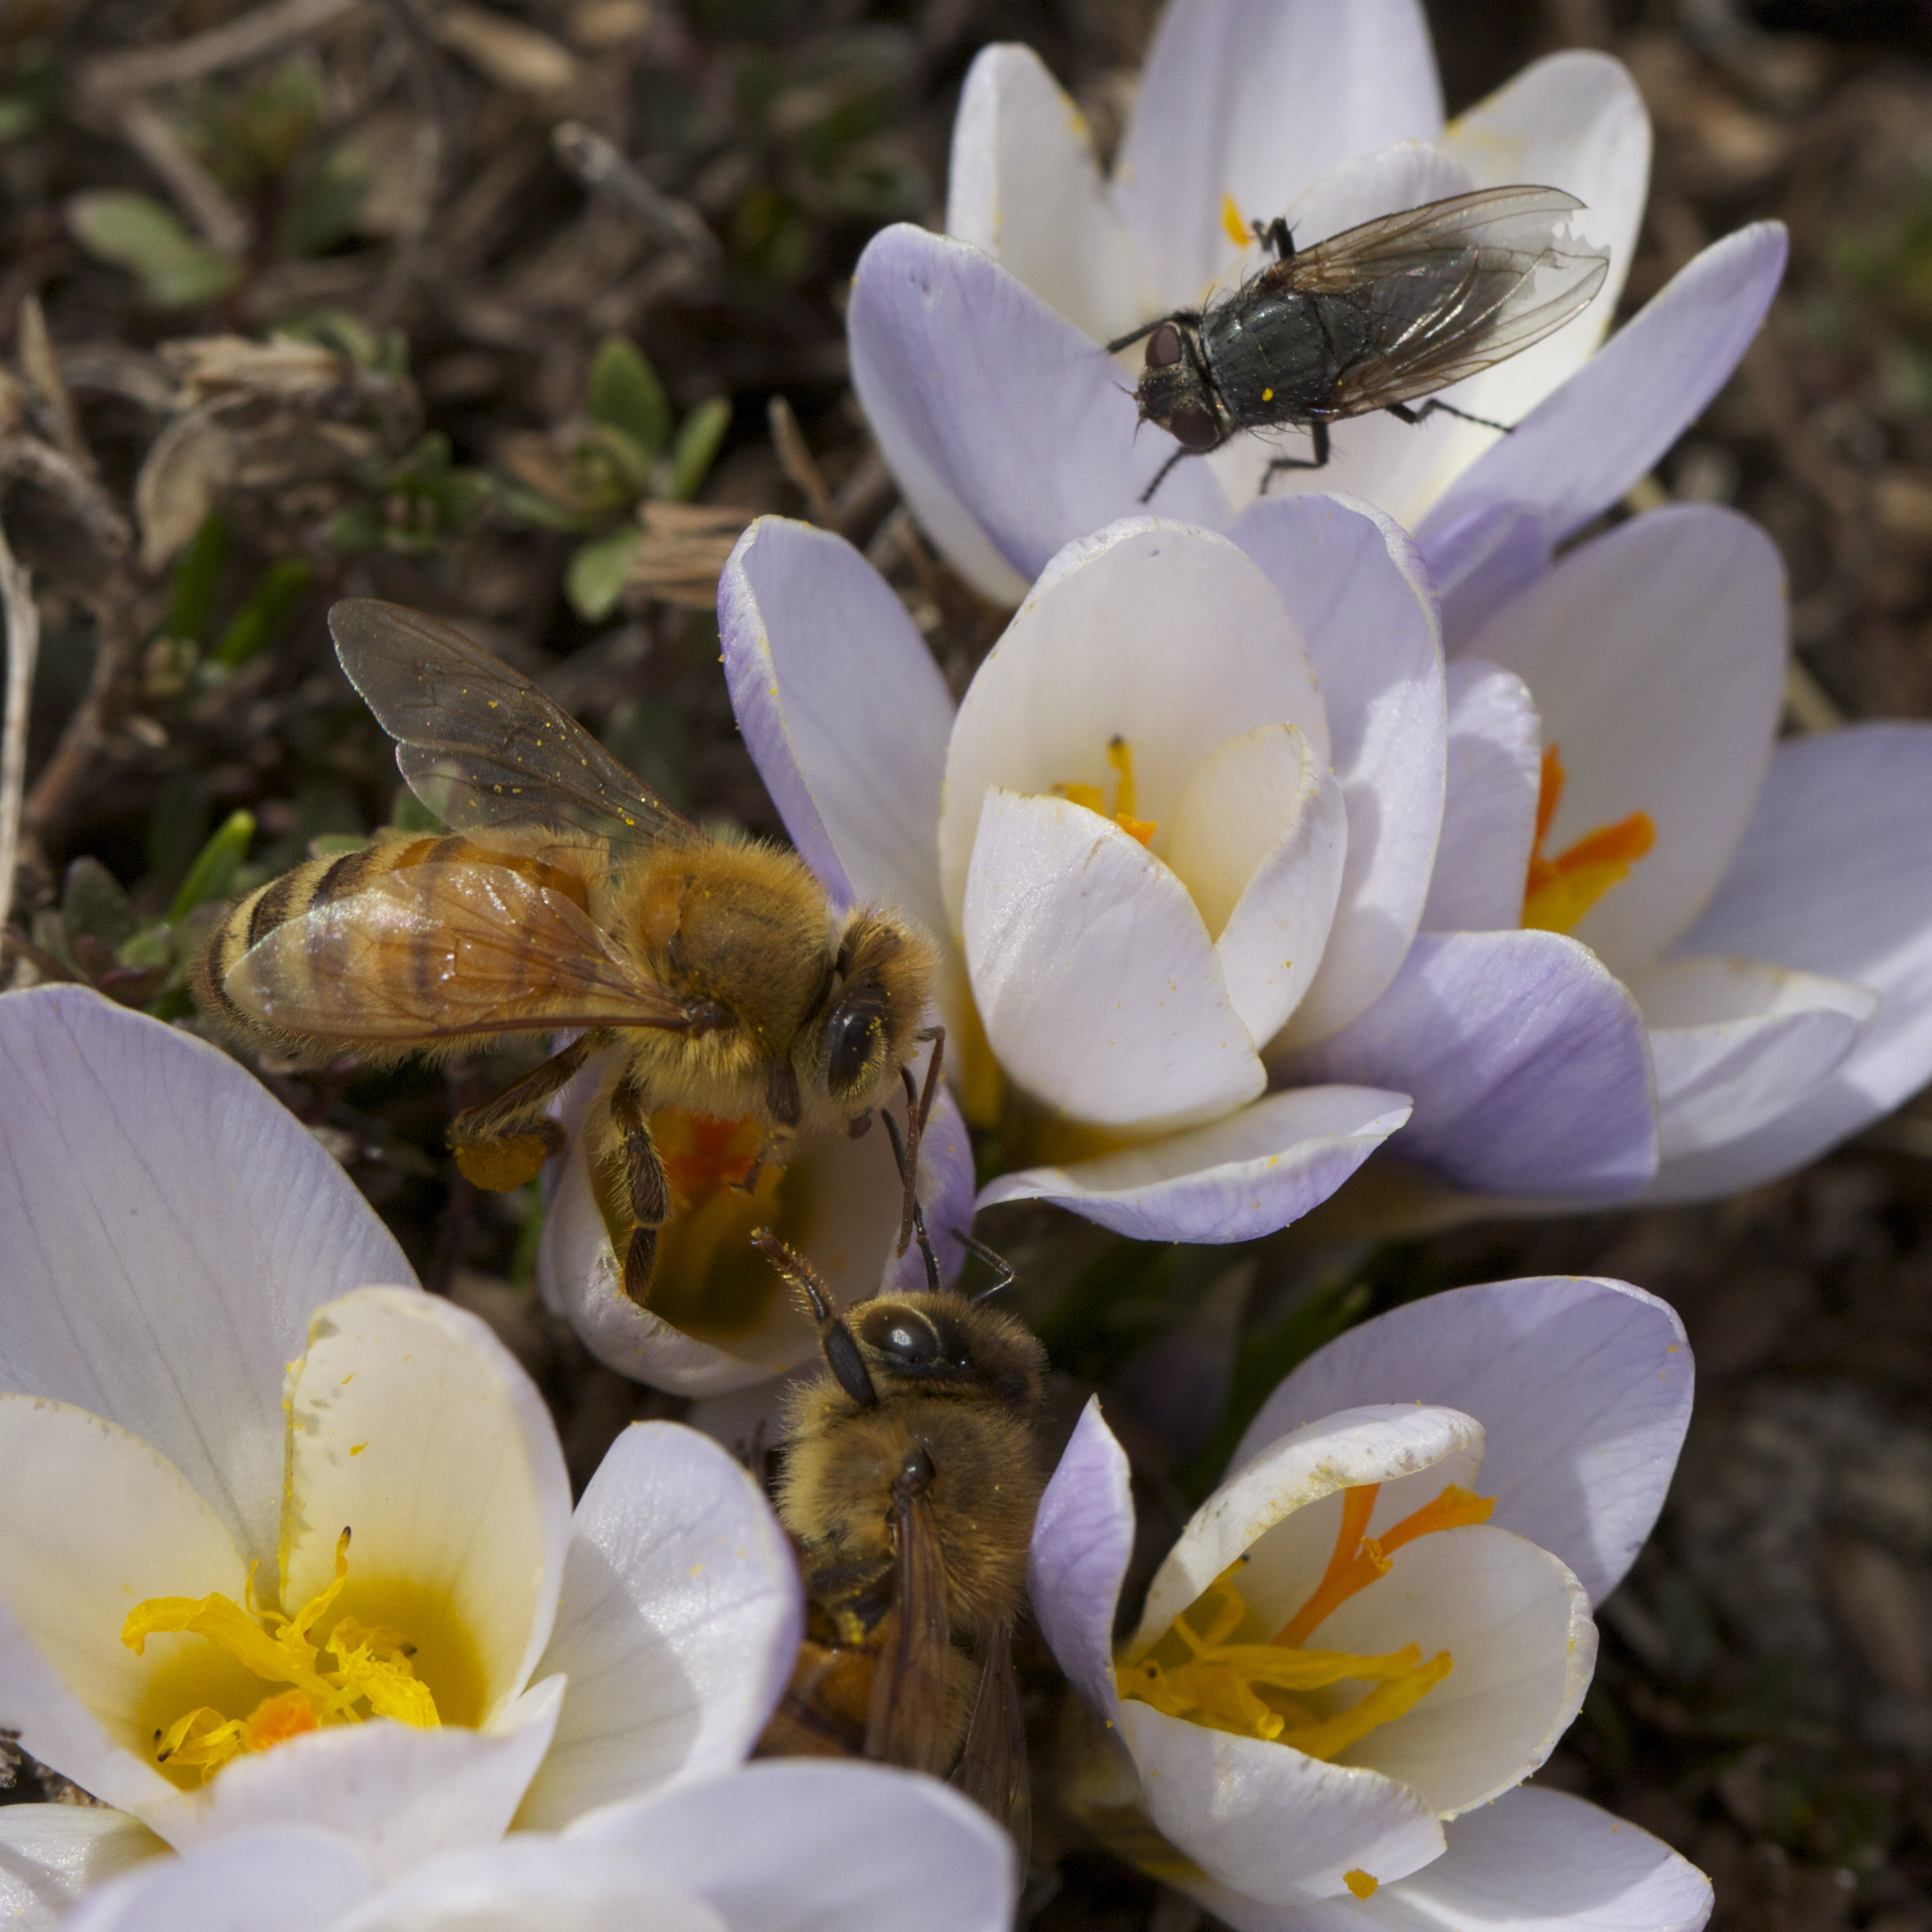 And the shot of the day, sharing bees and a fly.